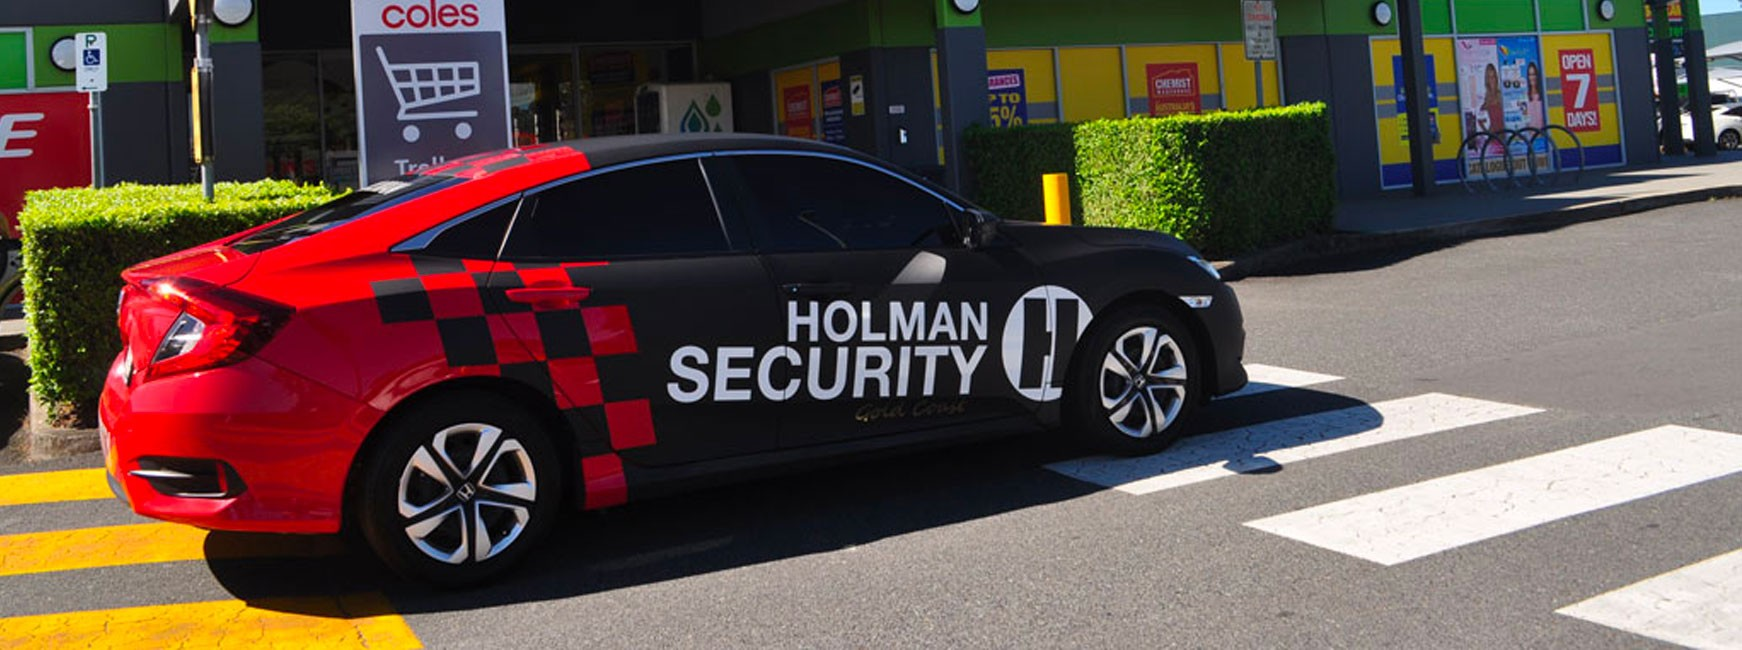 Holman Security